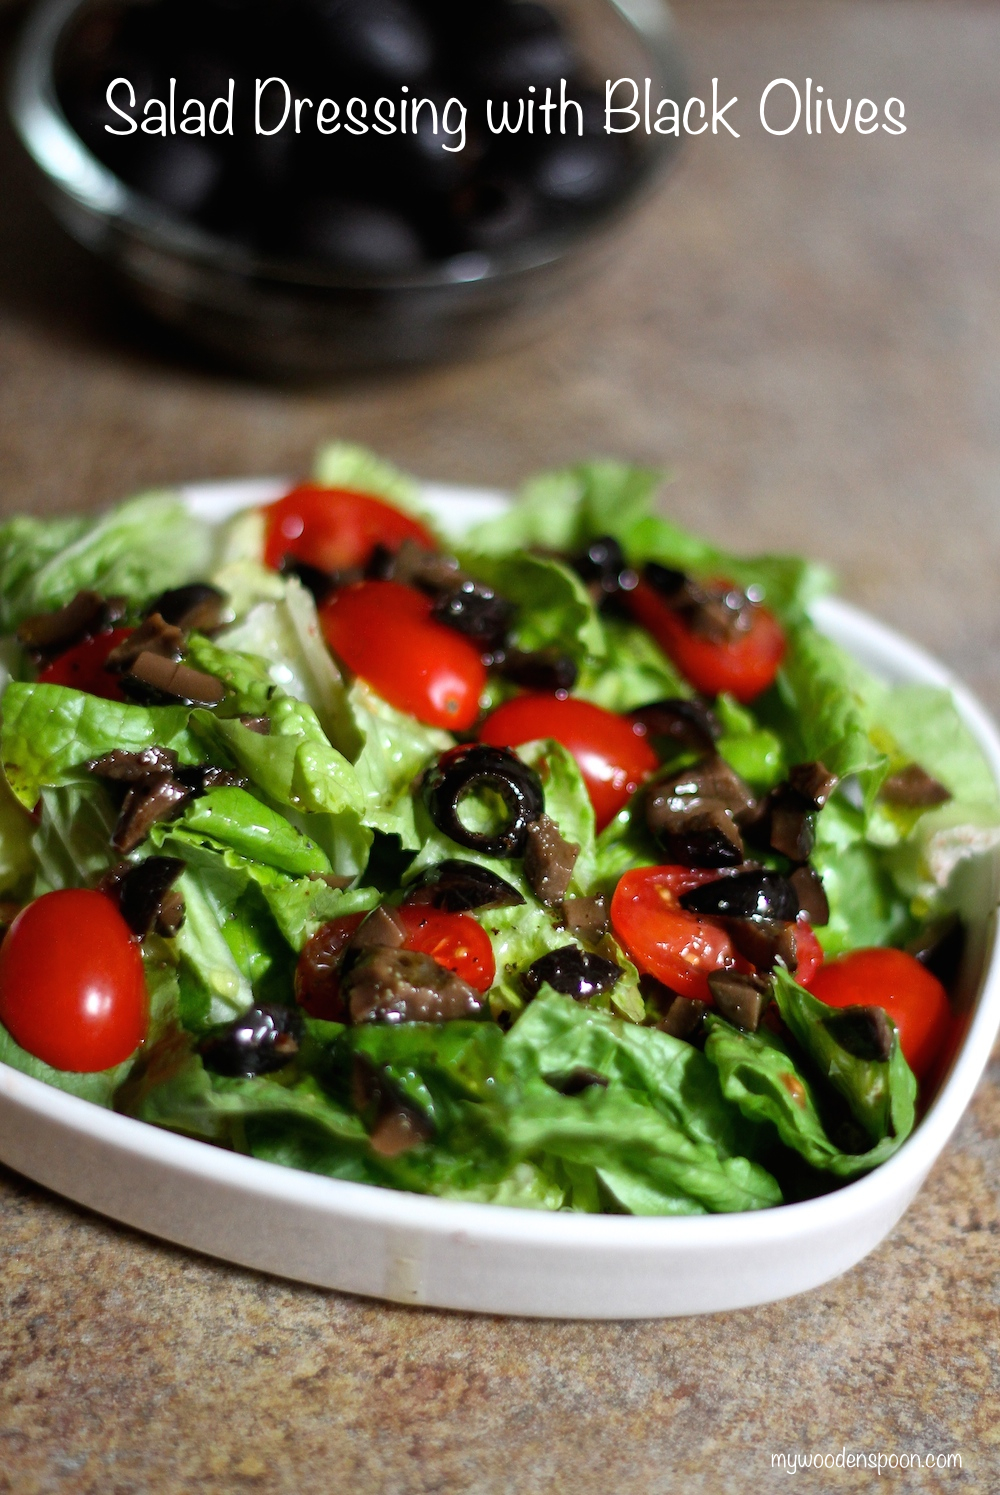 Salad Dressing with Black Olives